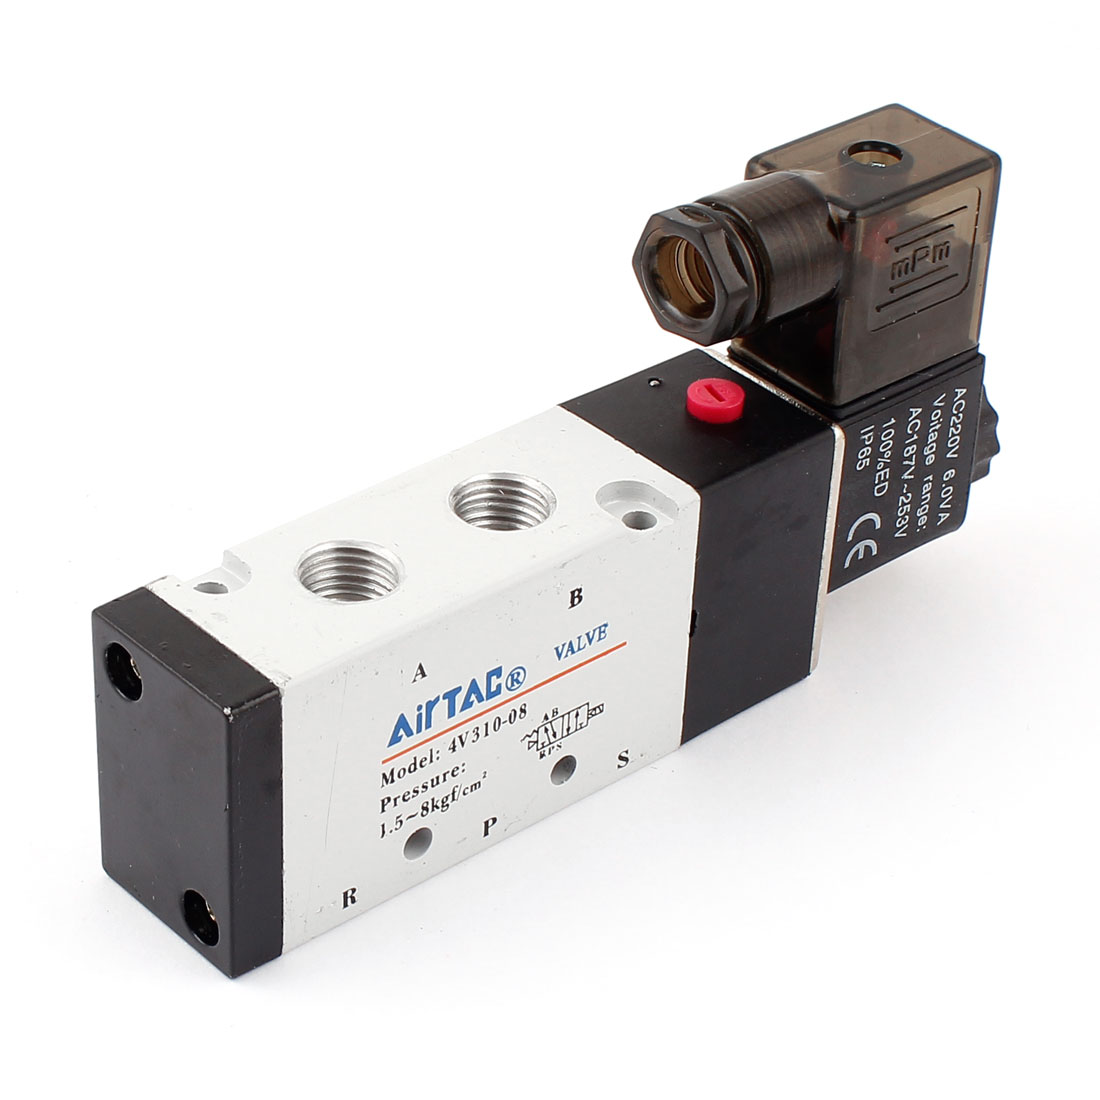 4V310-08 PT 1/4 Five Ports Two Position Pneumatic Solenoid Valve 220V